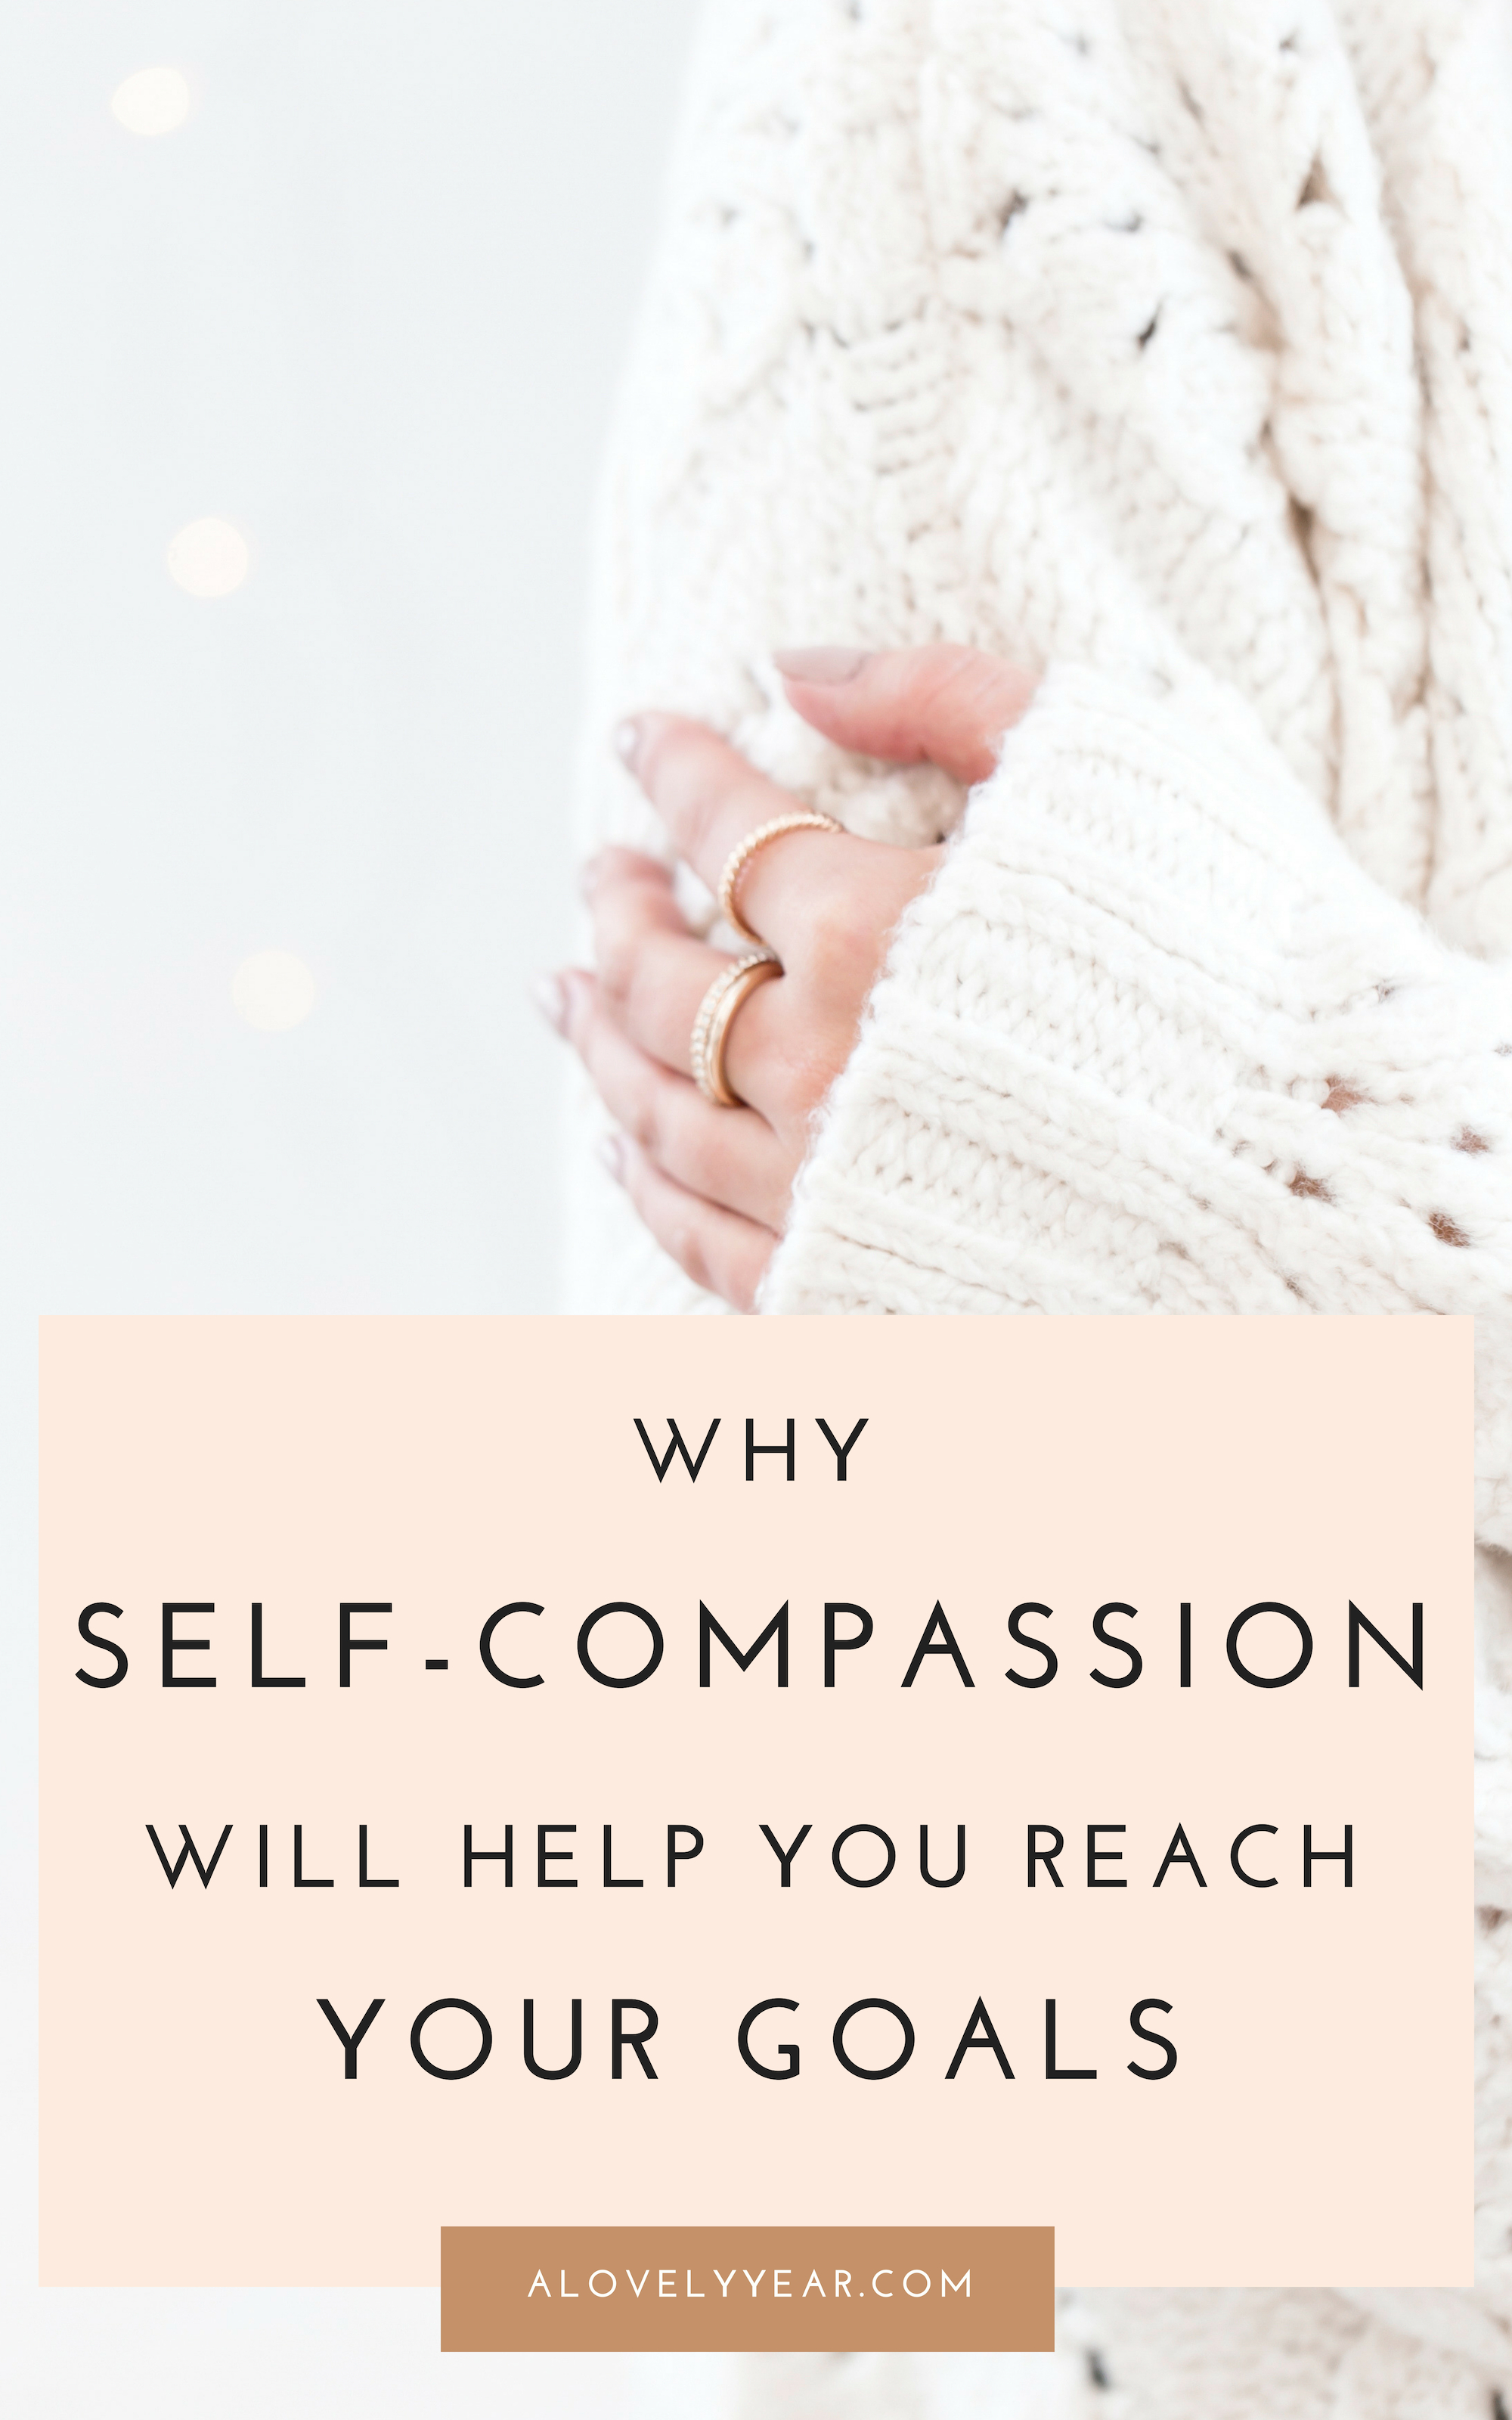 Why self-compassion will help you reach your goals